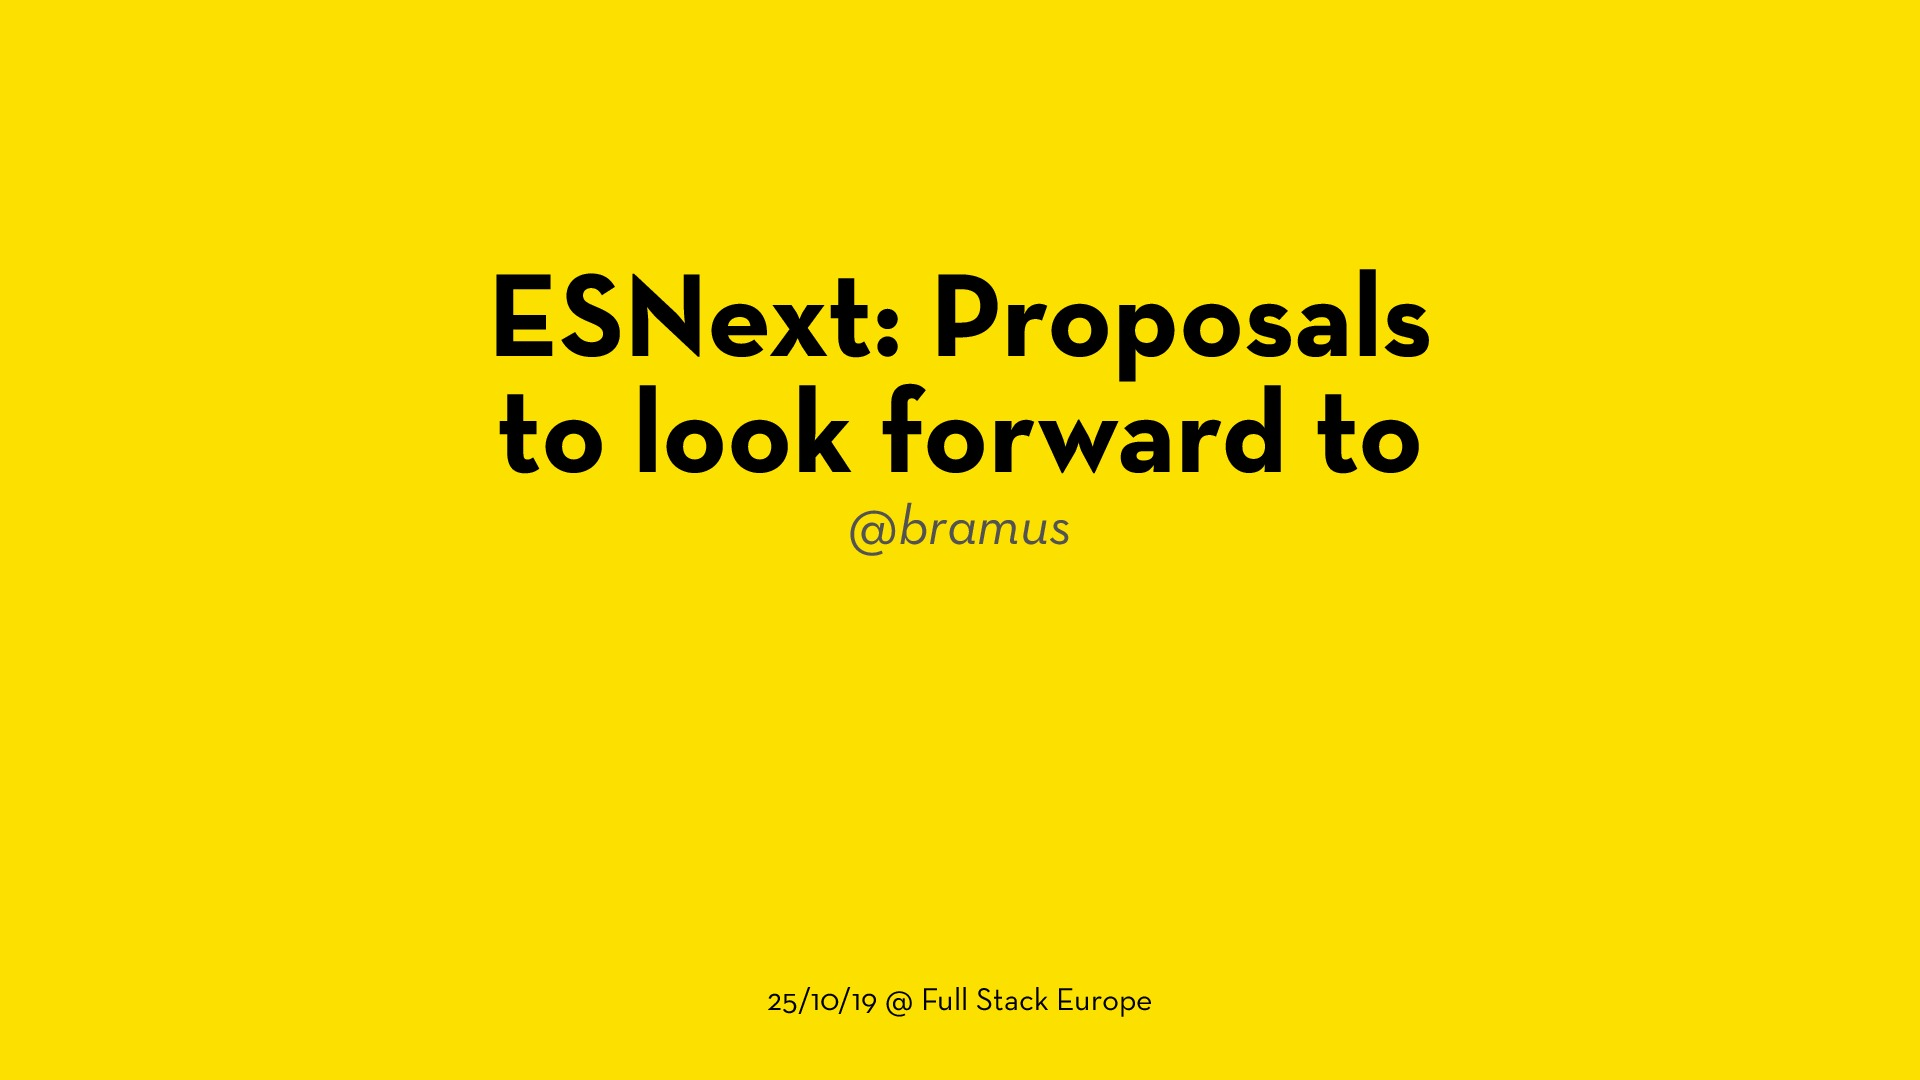 ESNext: Proposals to look forward to (2019.10.25 @ Full Stack Europe)